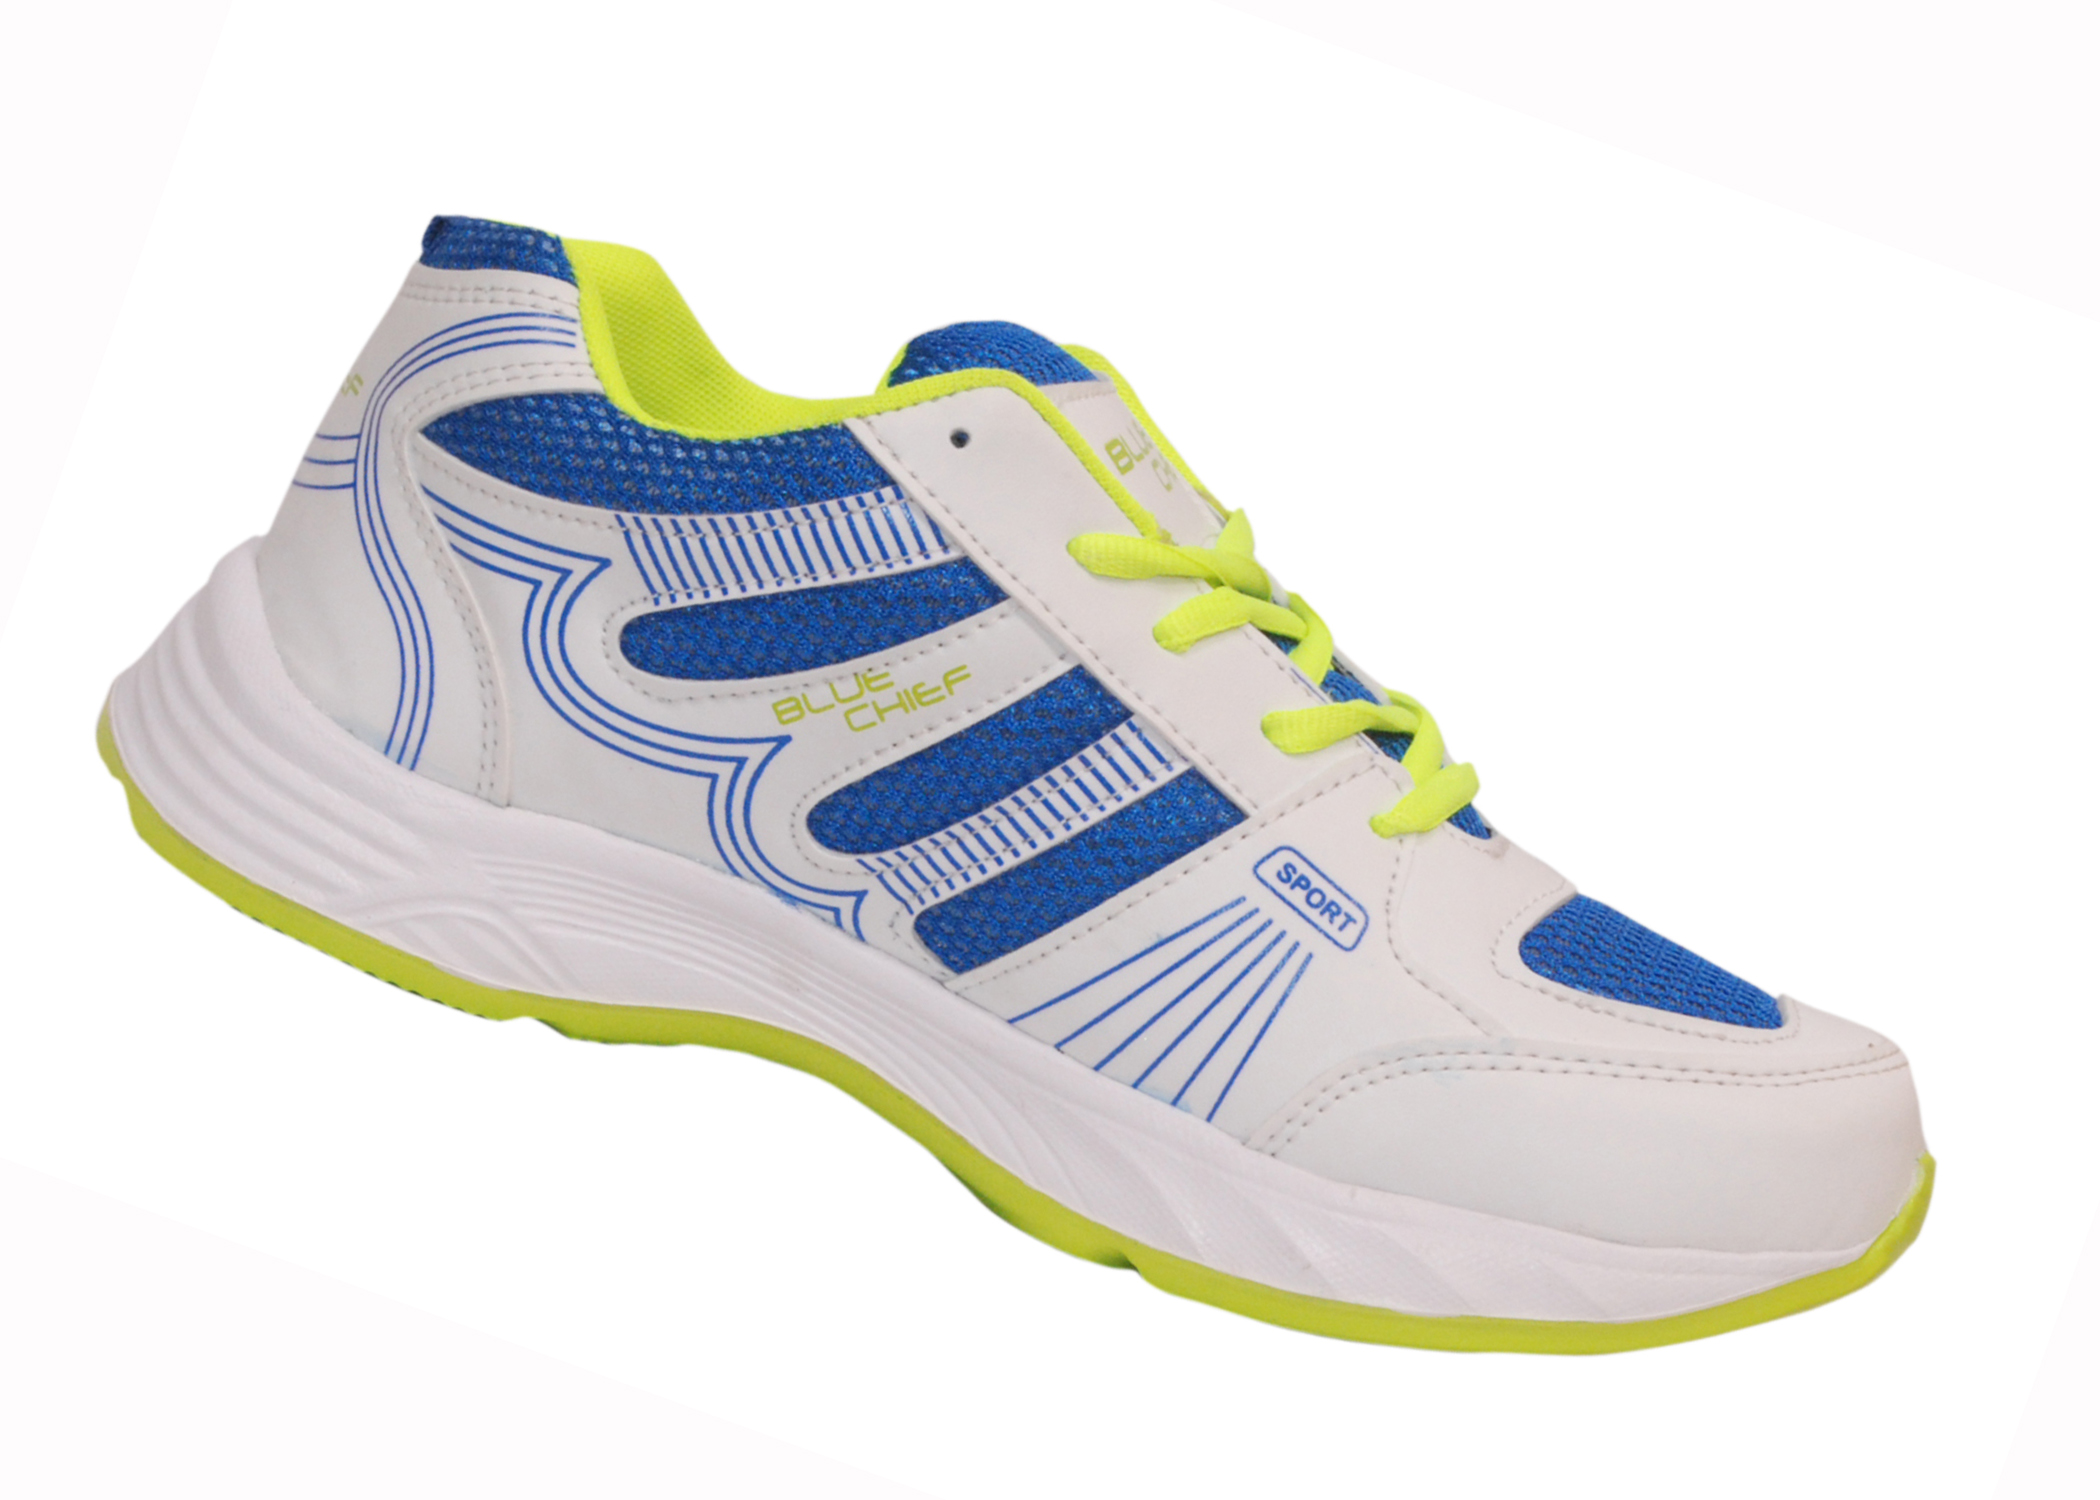 creativefashion8 The Blue Chief Running Shoes Bc1-multi